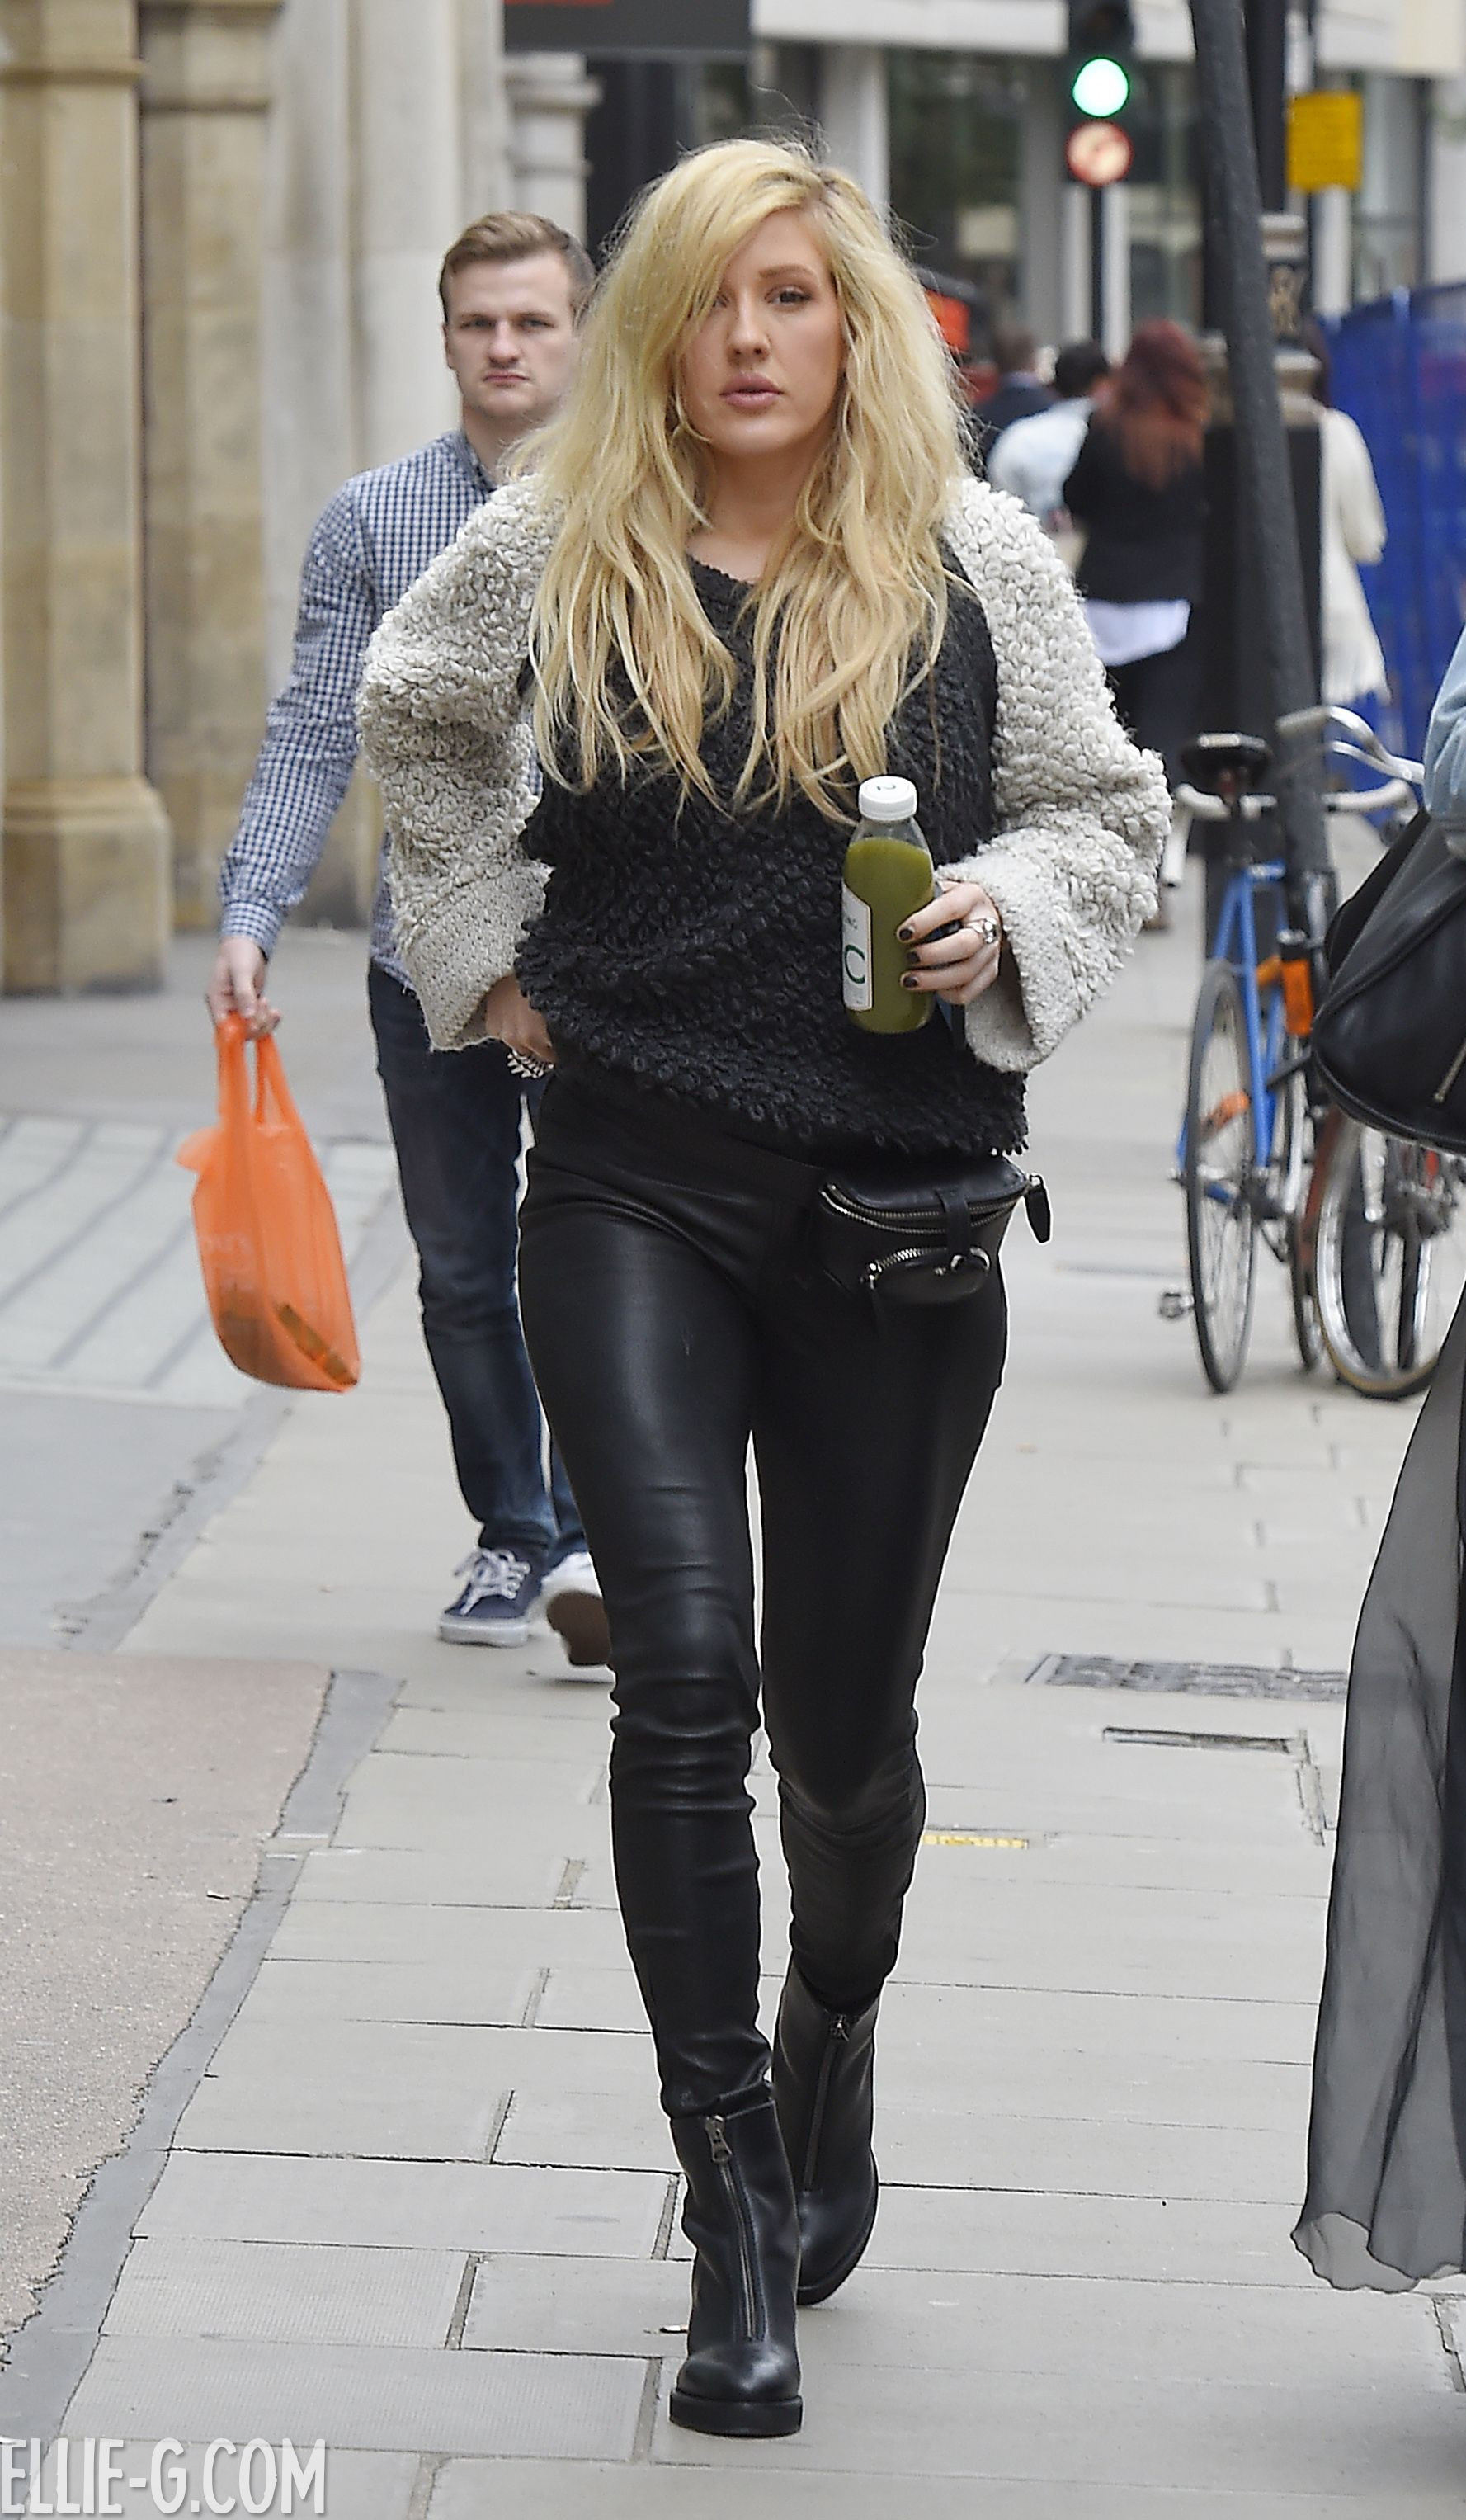 Ellie Goulding out to lunch with a friend